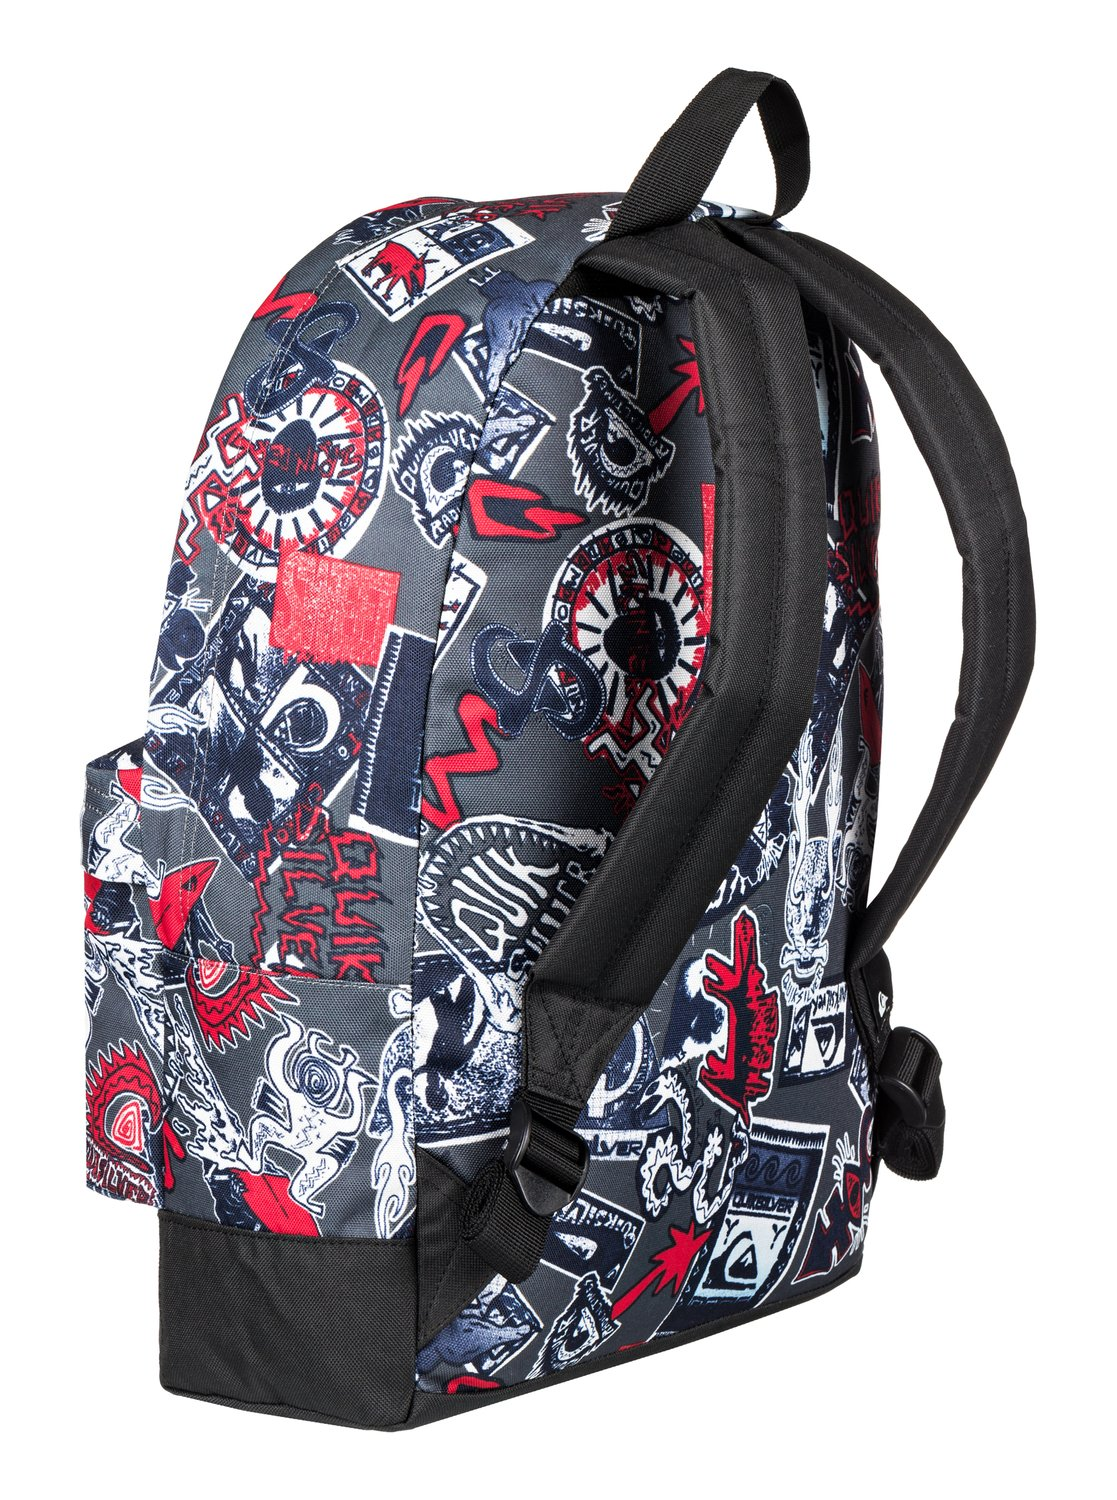 Quiksilver-Everyday-Poster-25L-Sac-a-dos-taille-moyenne-Homme miniature 18